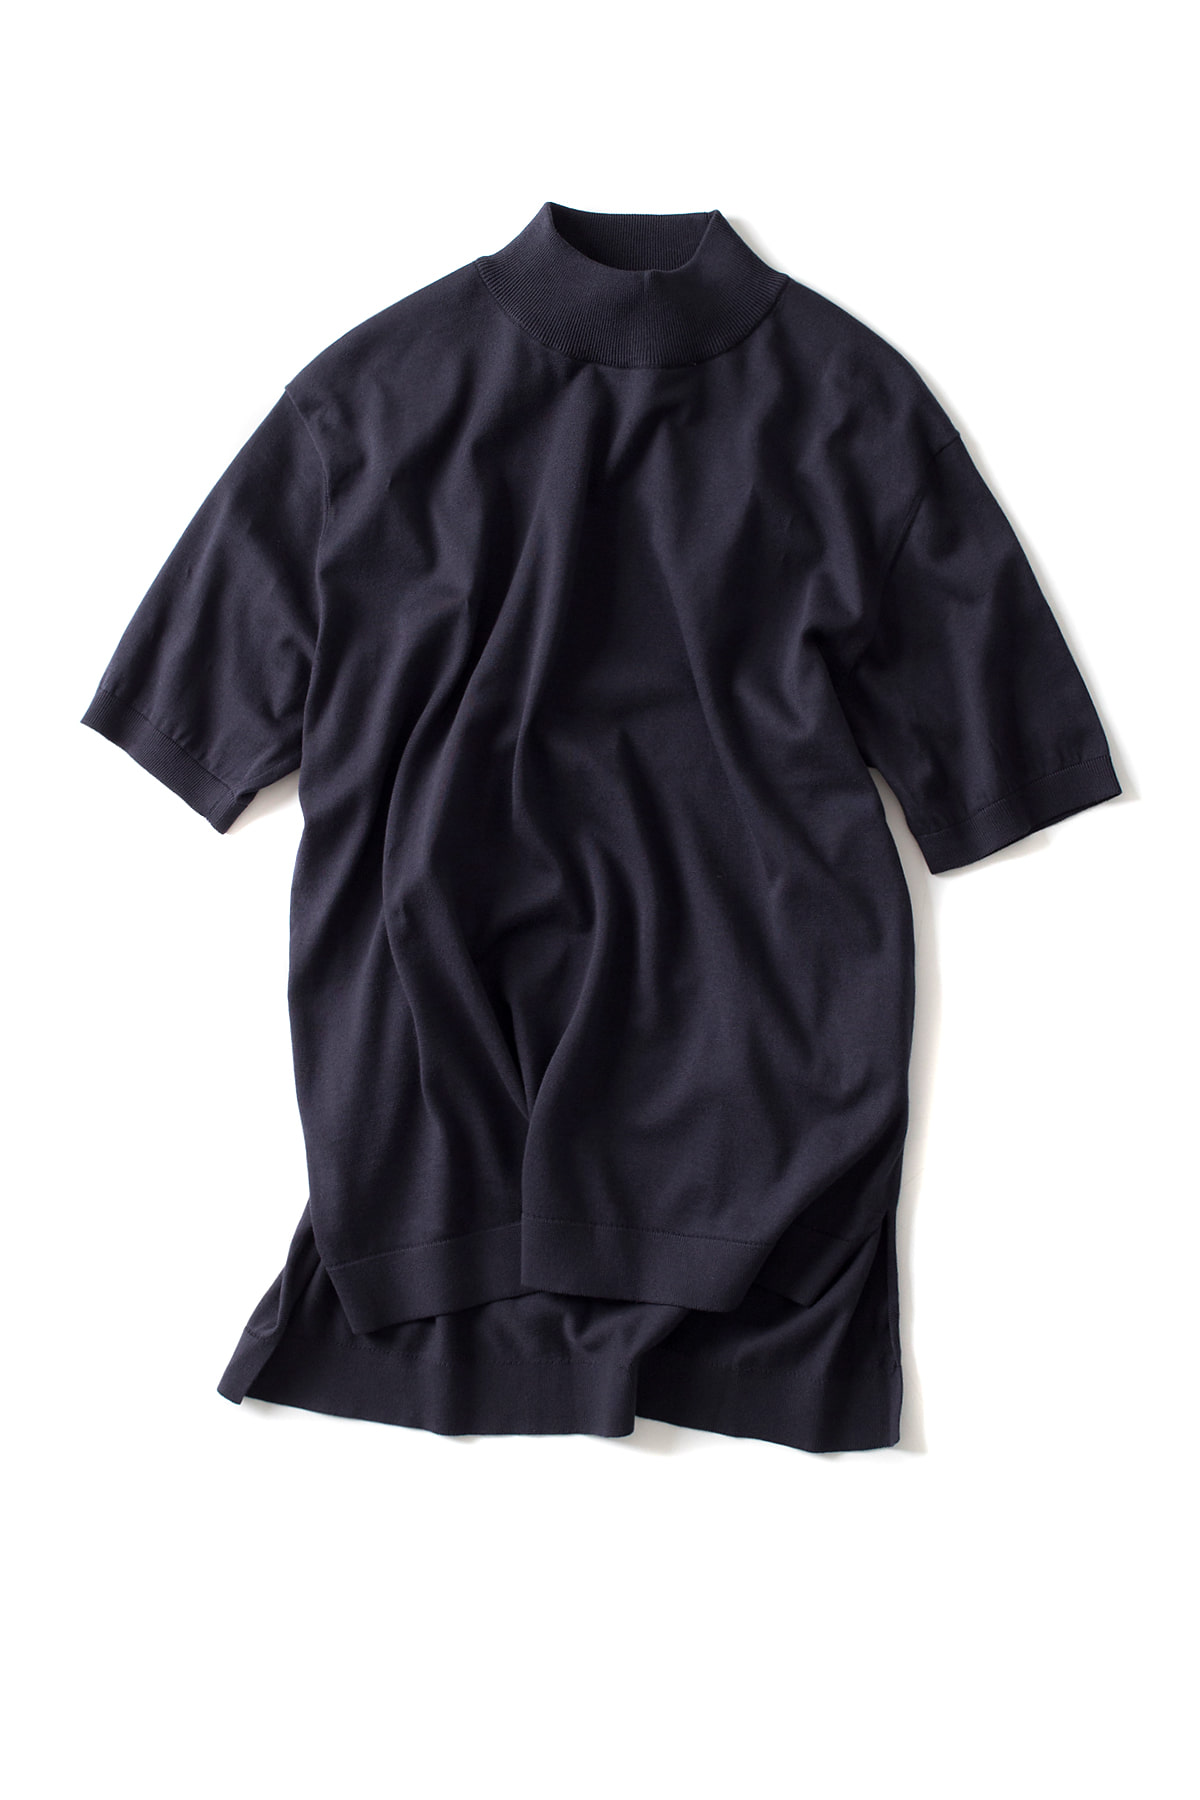 Kaptain Sunshine : Mockneck Half Sleeved Knit T (Navy)